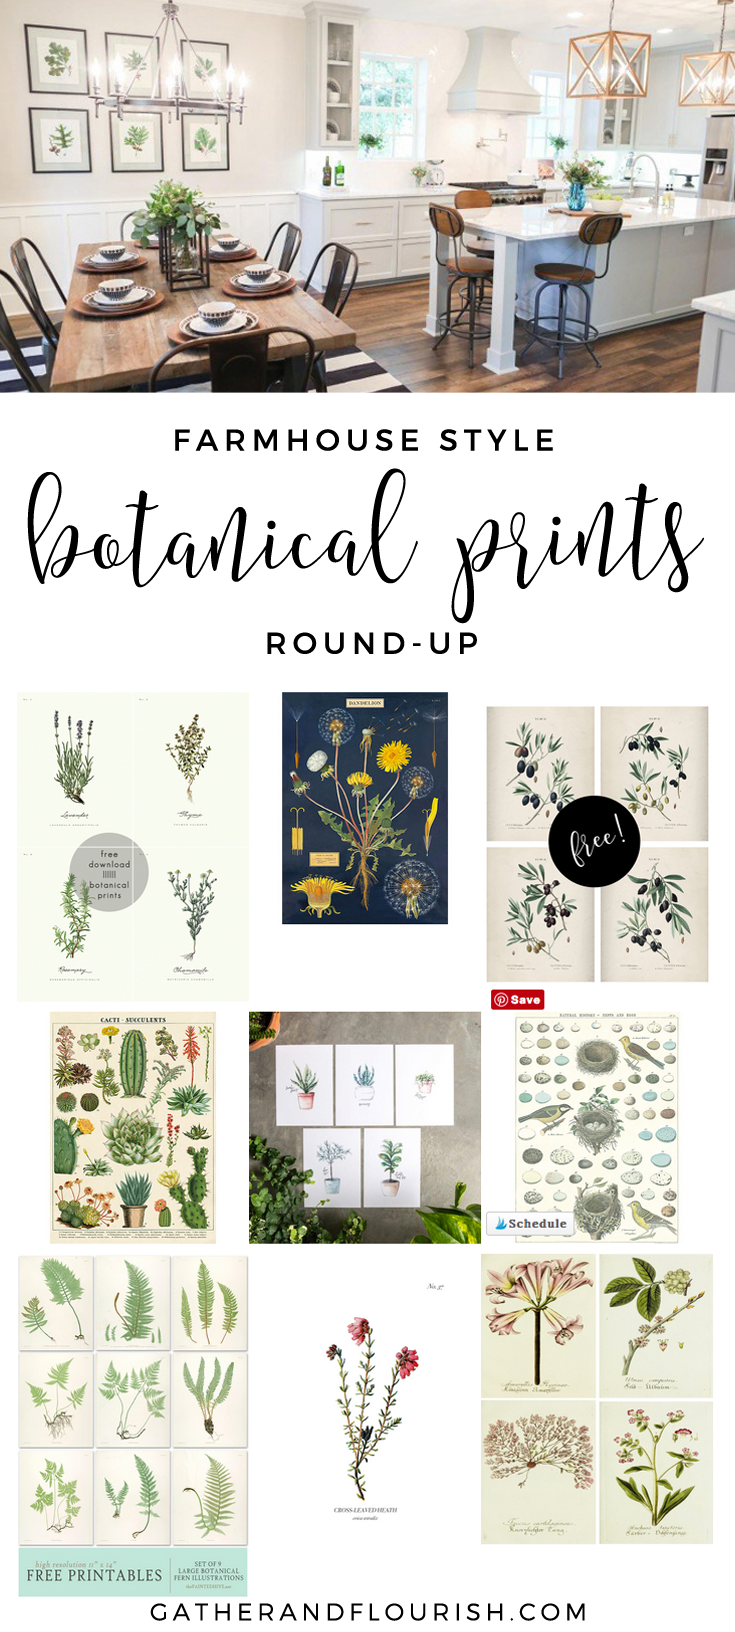 Farmhouse style botanical prints round-up! Free and budget-friendly farmhouse style botanical prints!